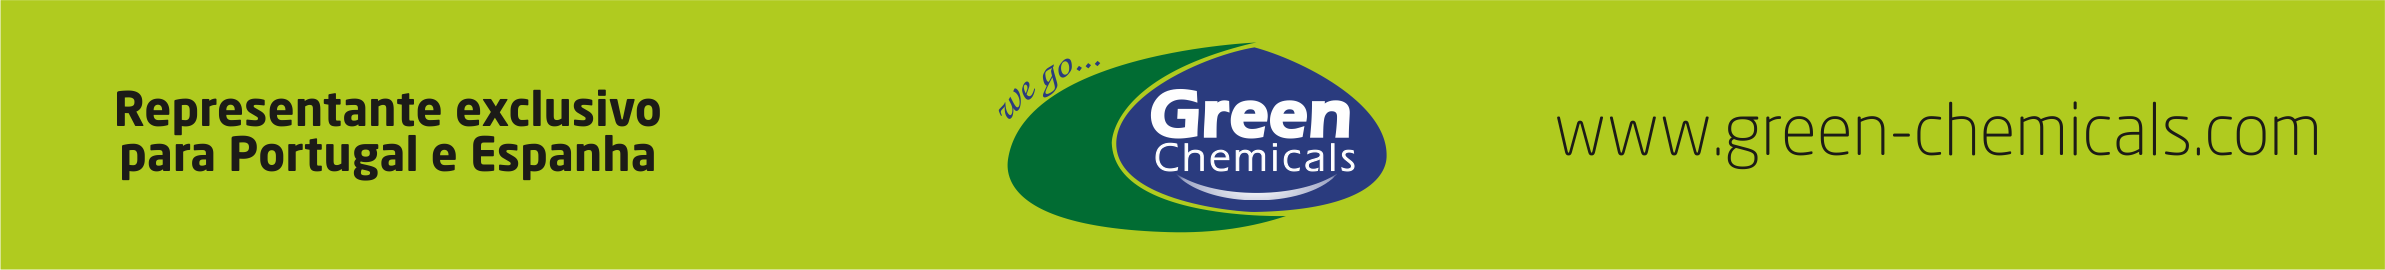 green-chemicals